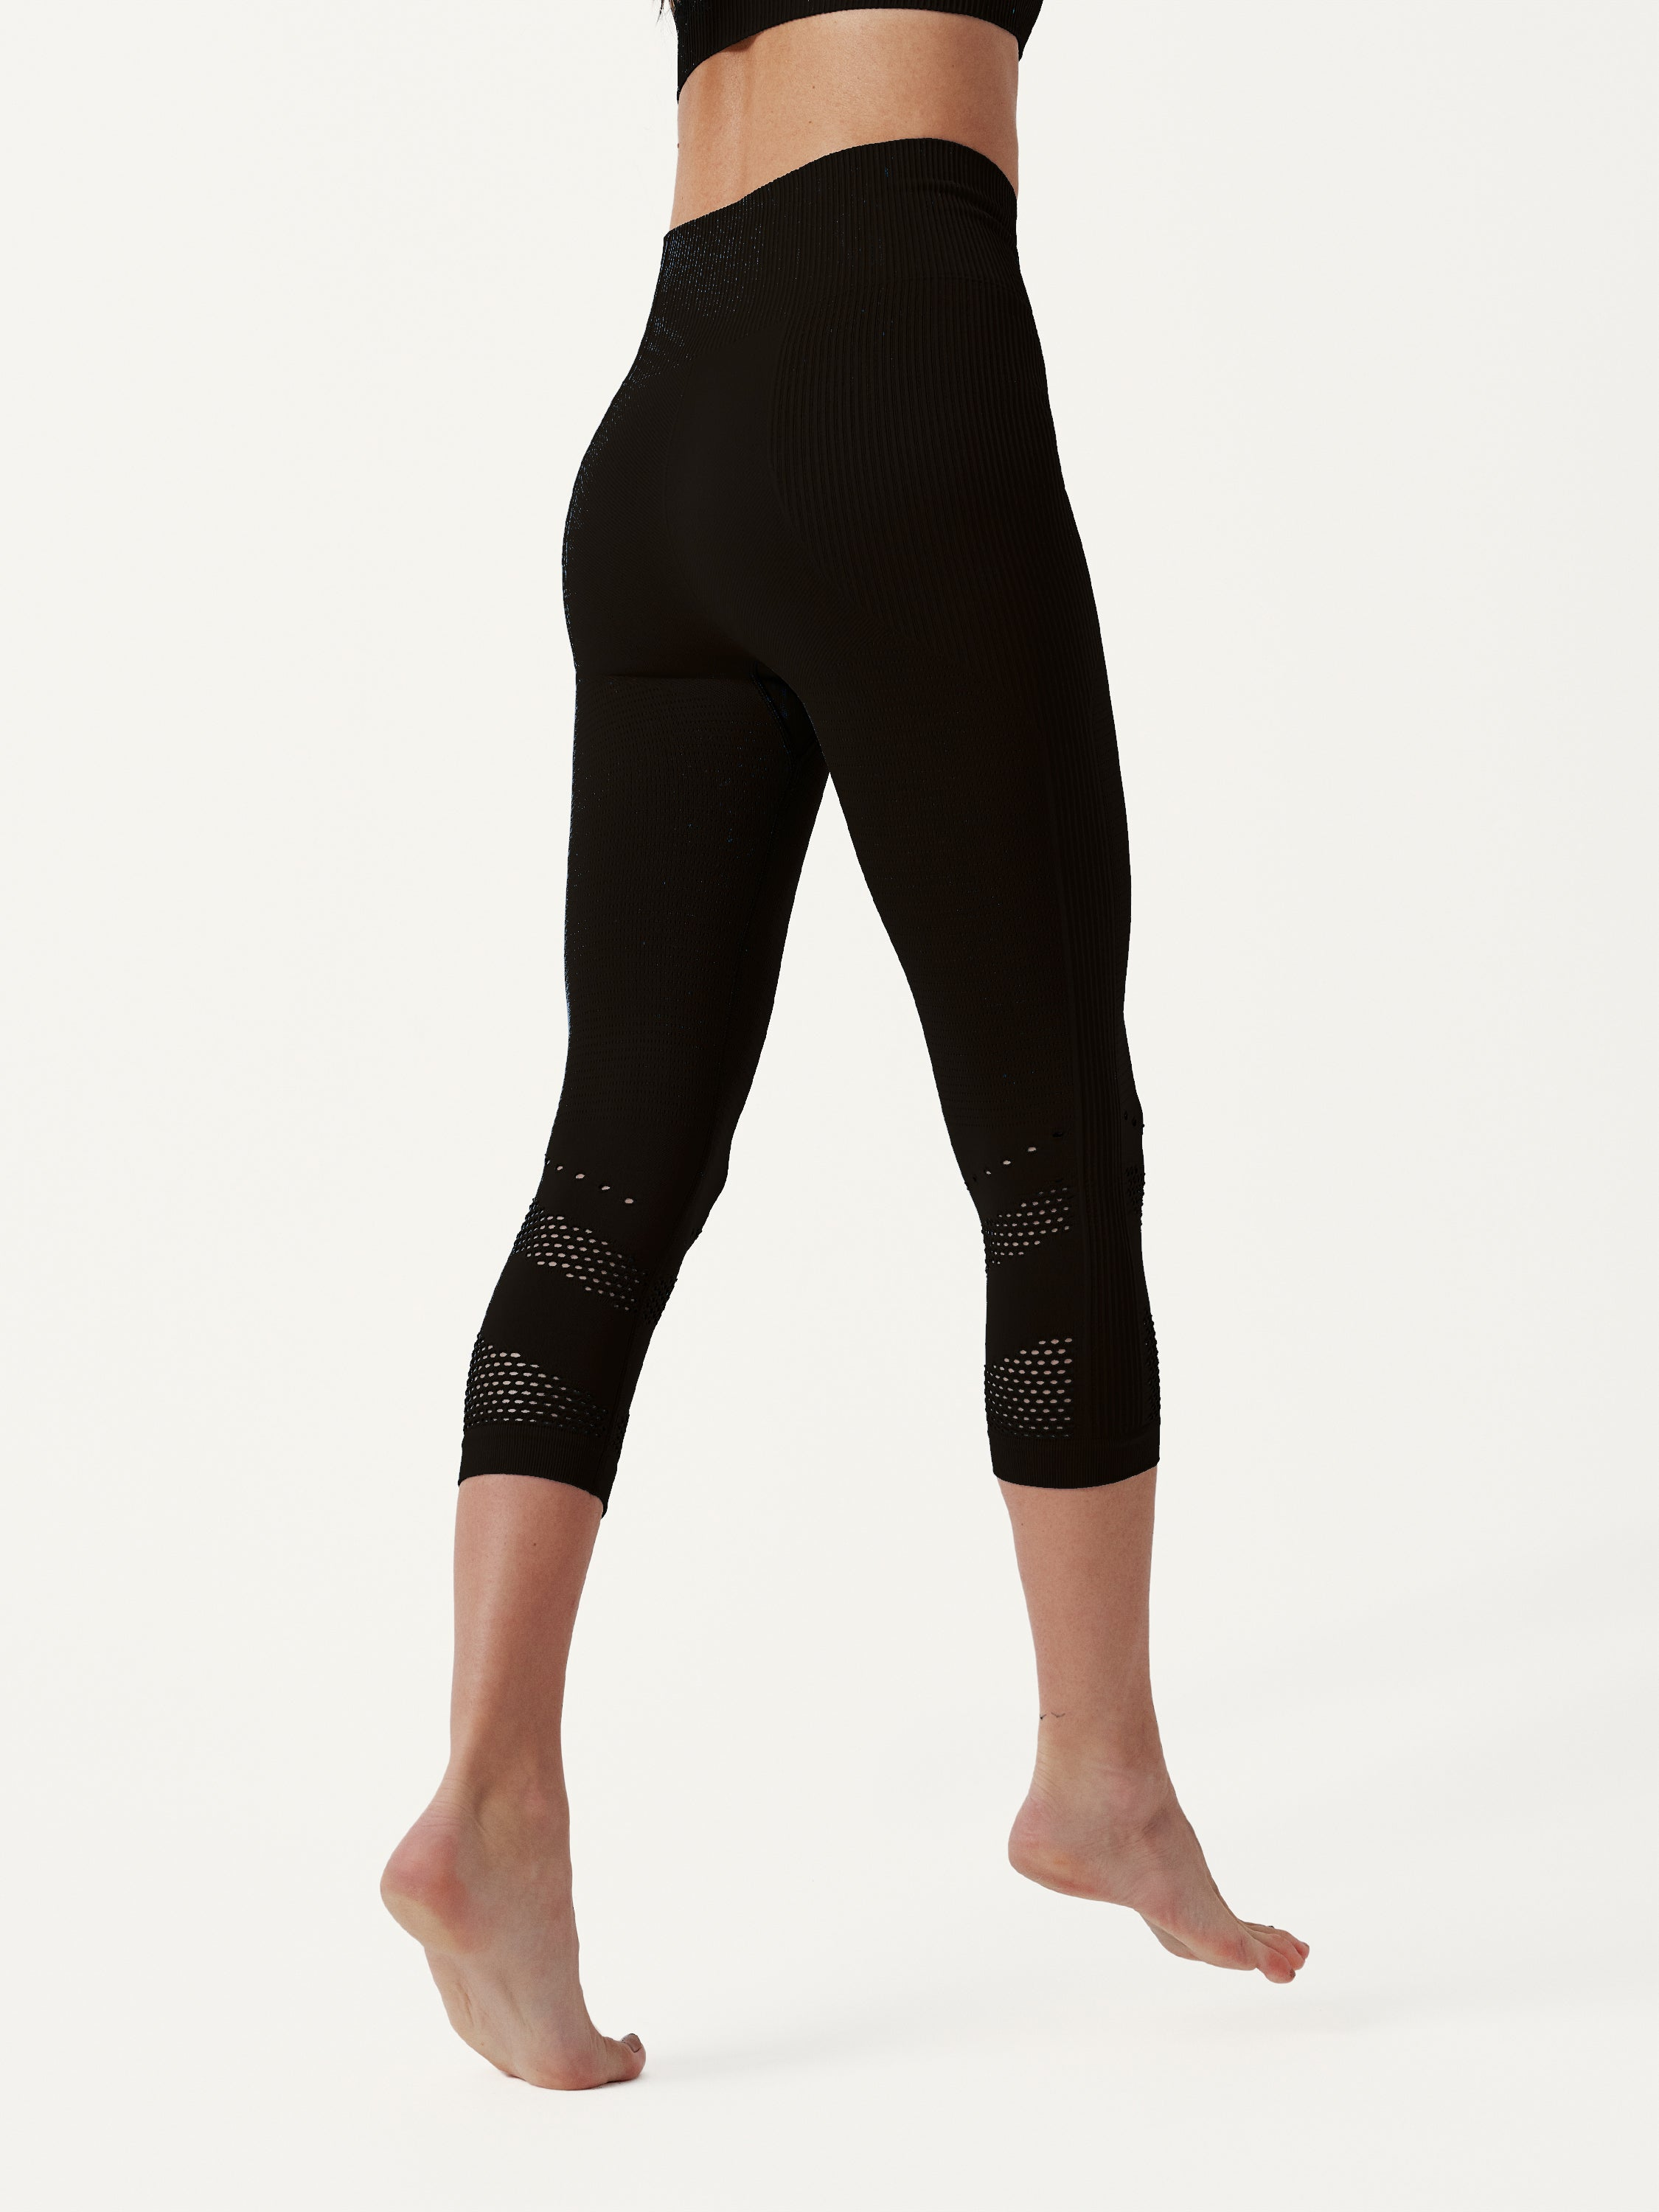 Legging Indali Black